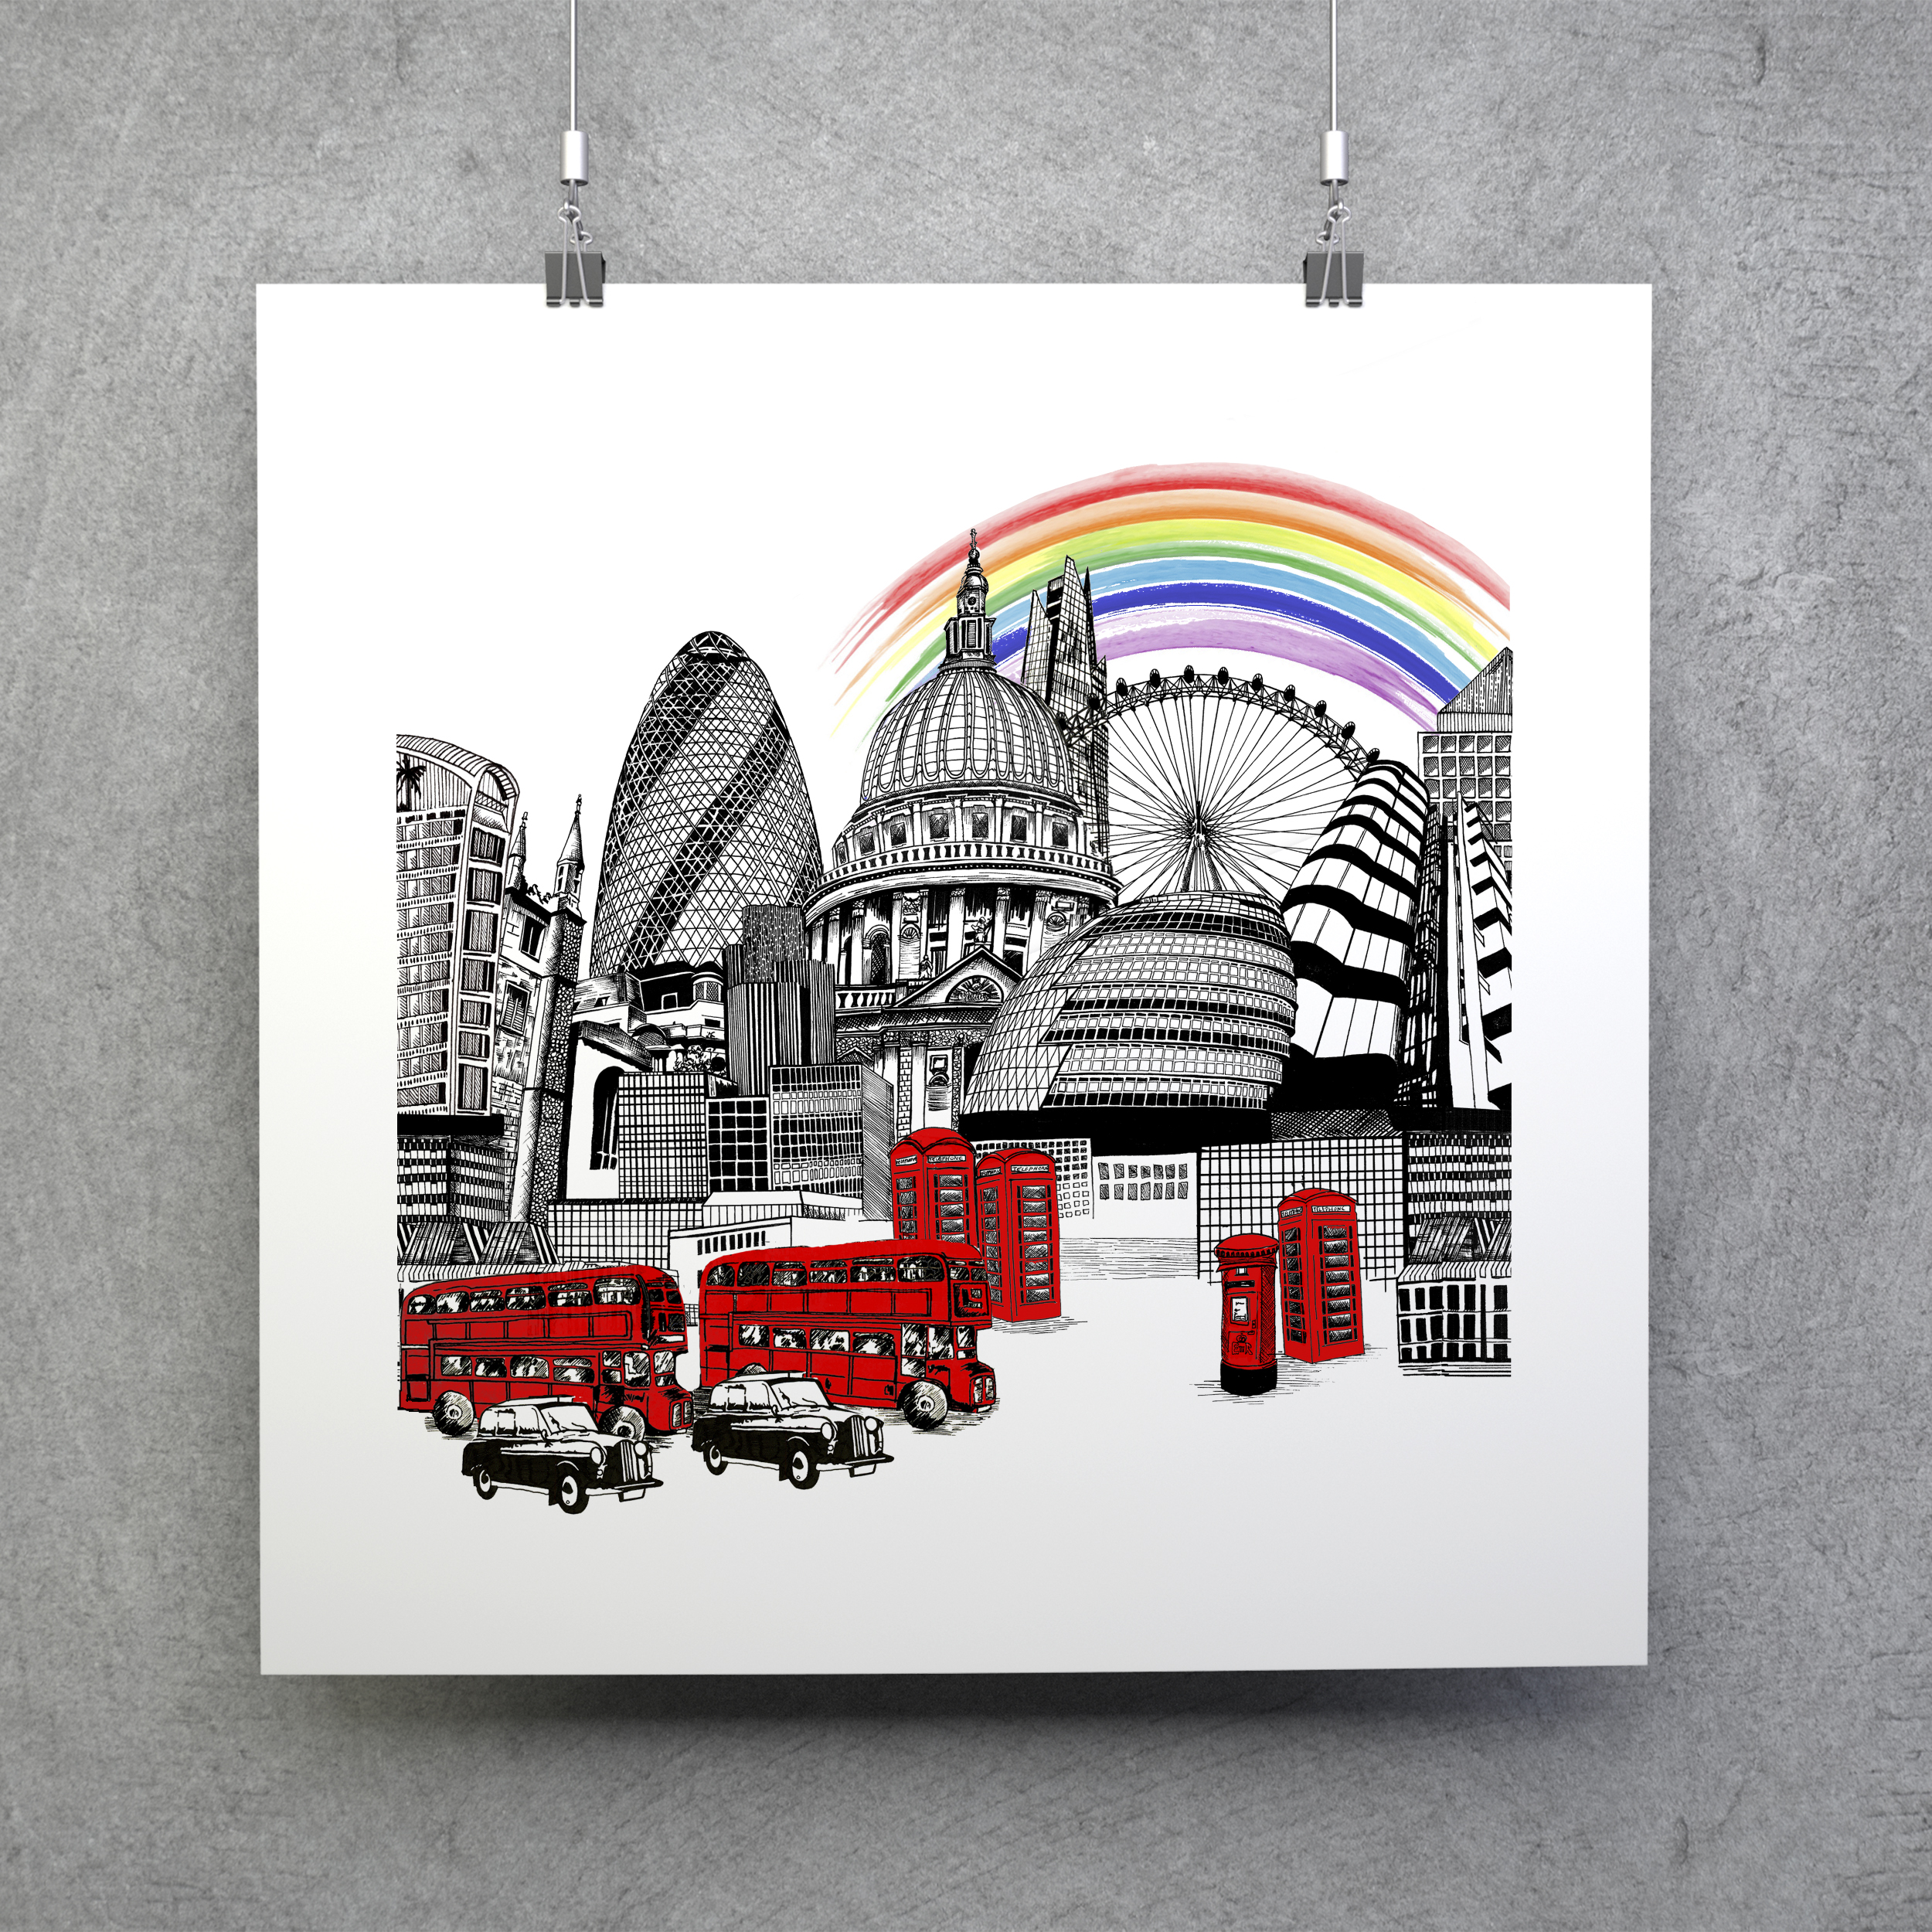 Katie Clement Illustration- London Skyline Charity Edition Giclee Art Print, hanging on a grey wall from metal clips.